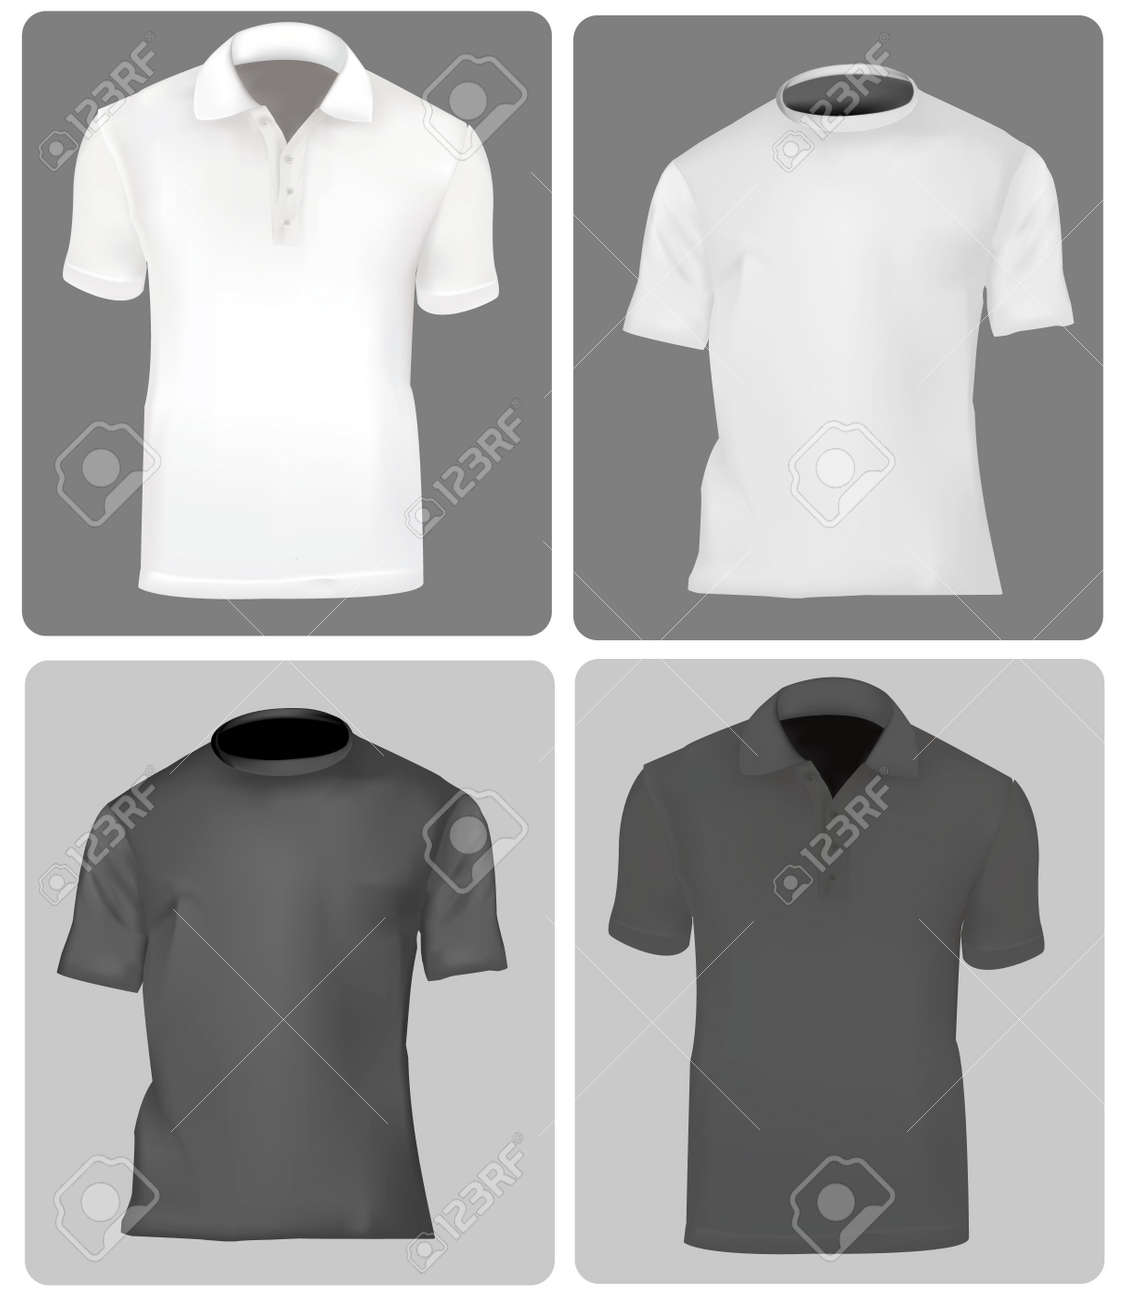 Black t shirt with white collar -  White Collar Black T Shirt With Collar Template Two Polo Shirts Download